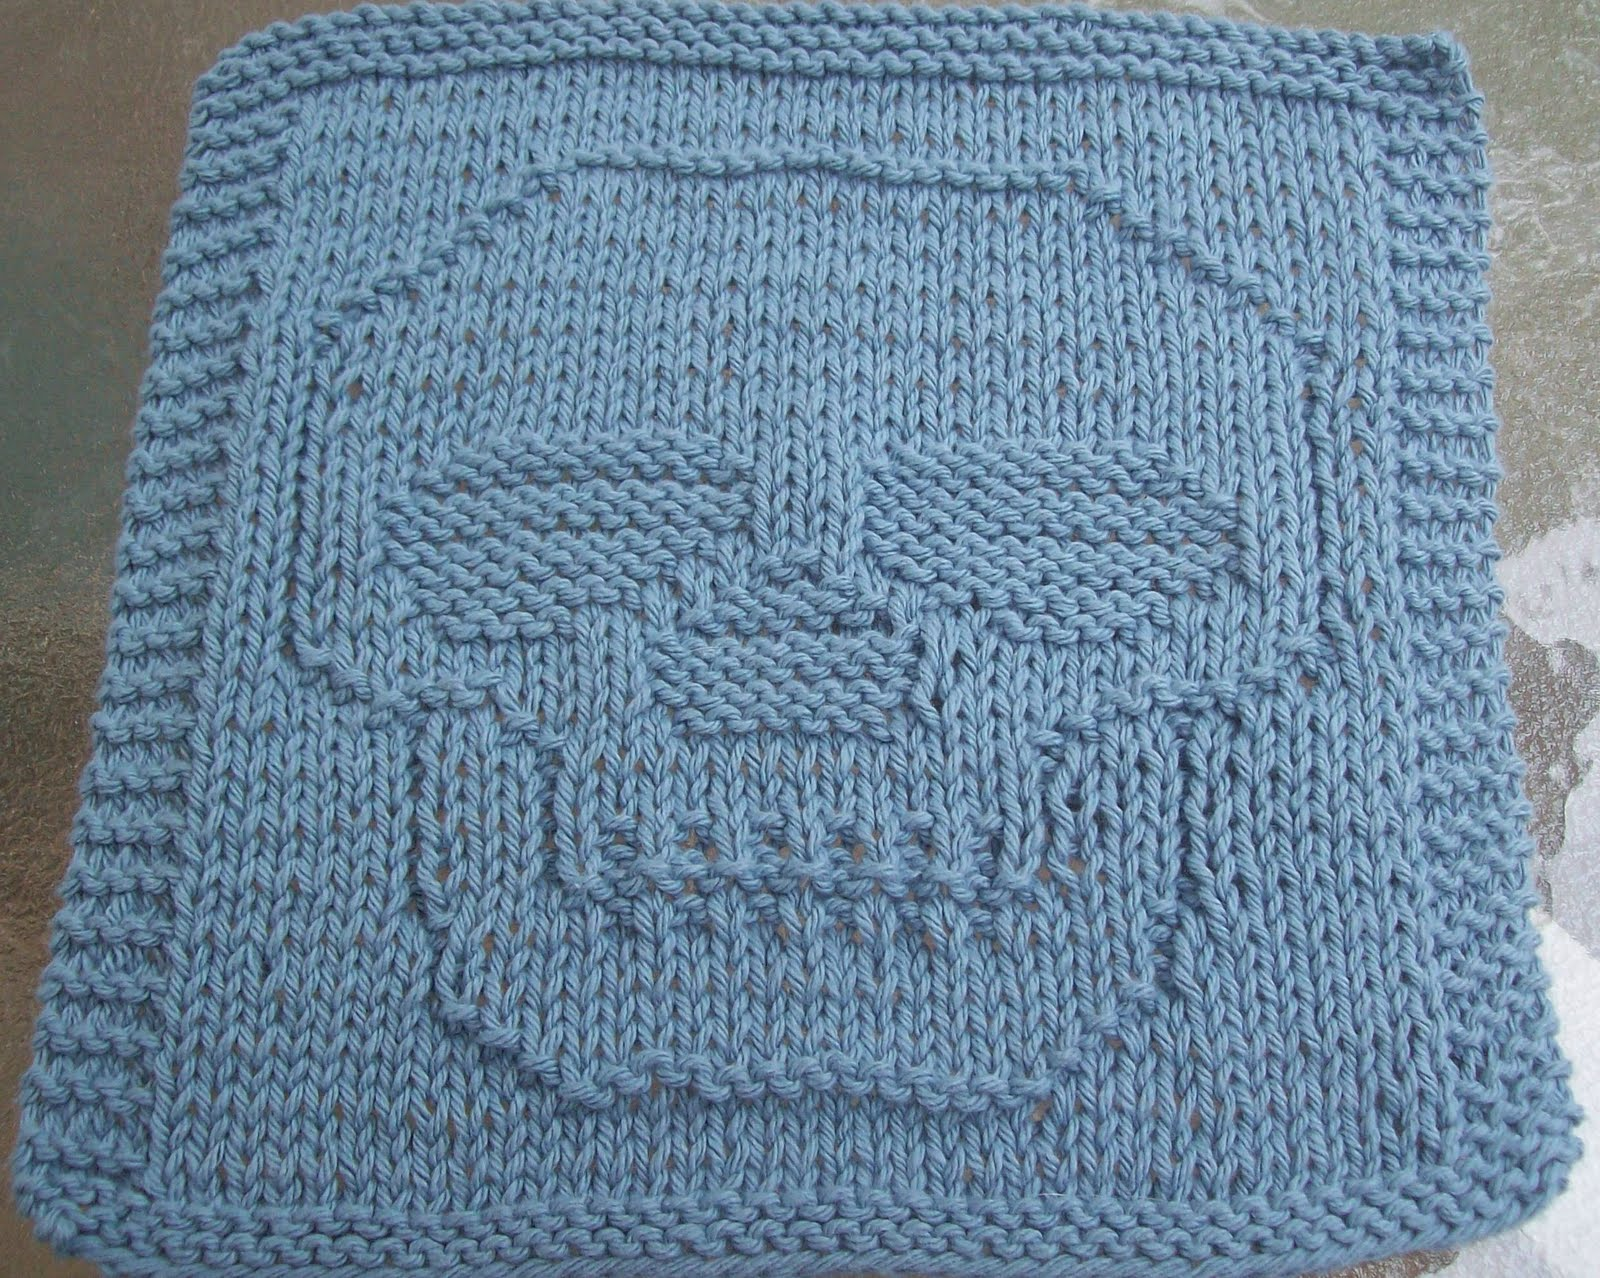 Dish Cloth Knitting Pattern : DigKnitty Designs: Just a Skull Knit Dishcloth Pattern